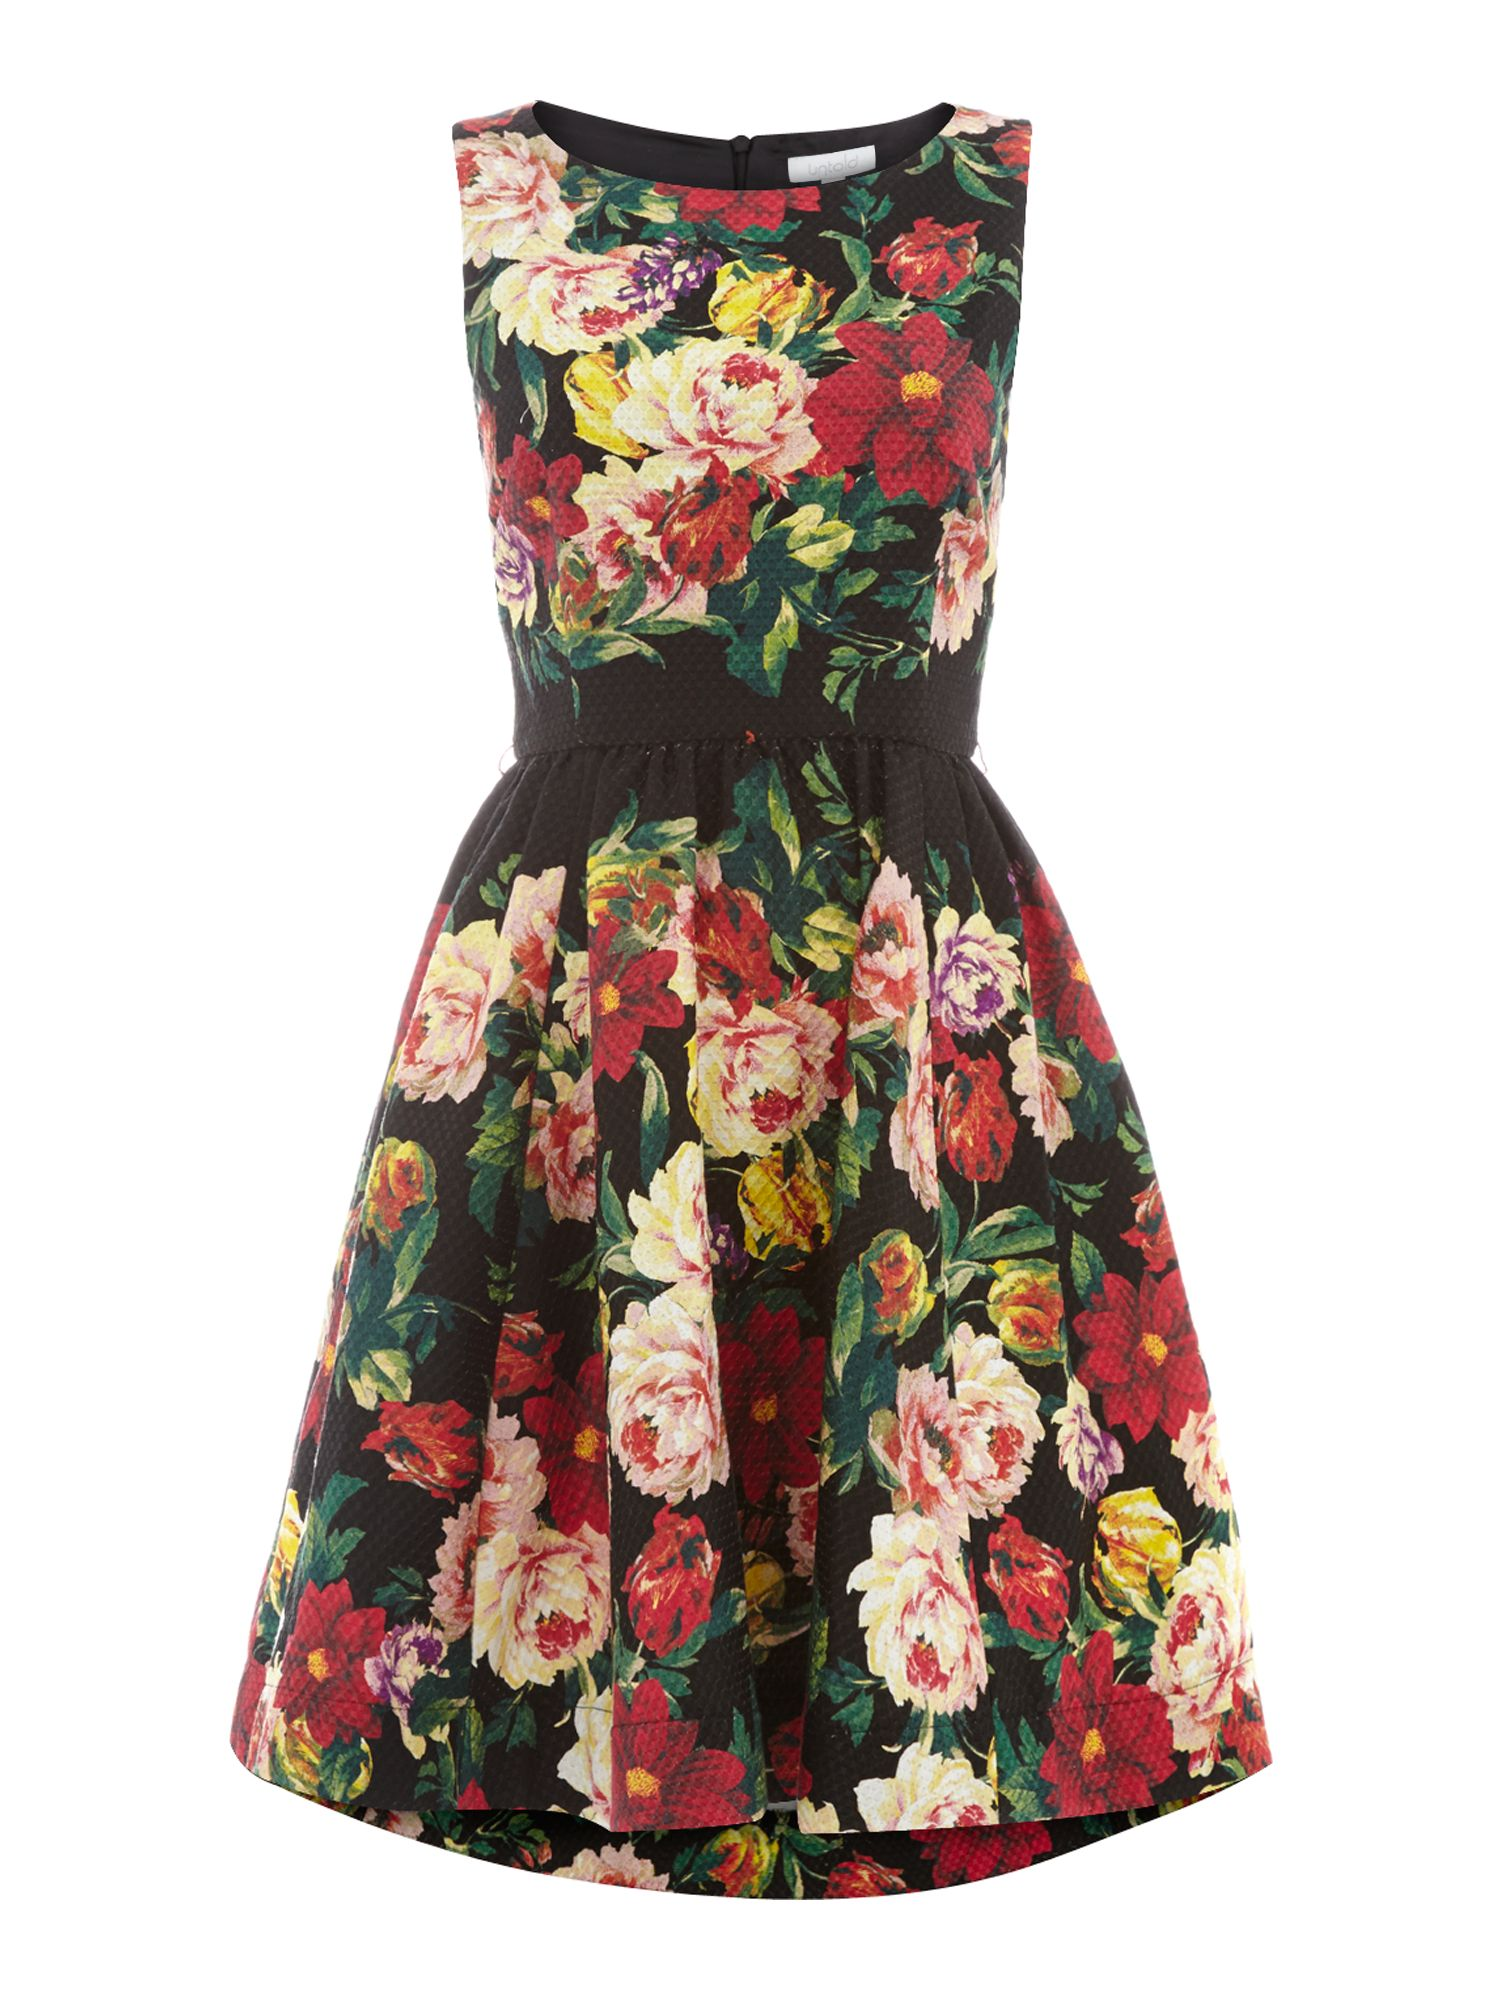 Piquet floral dress